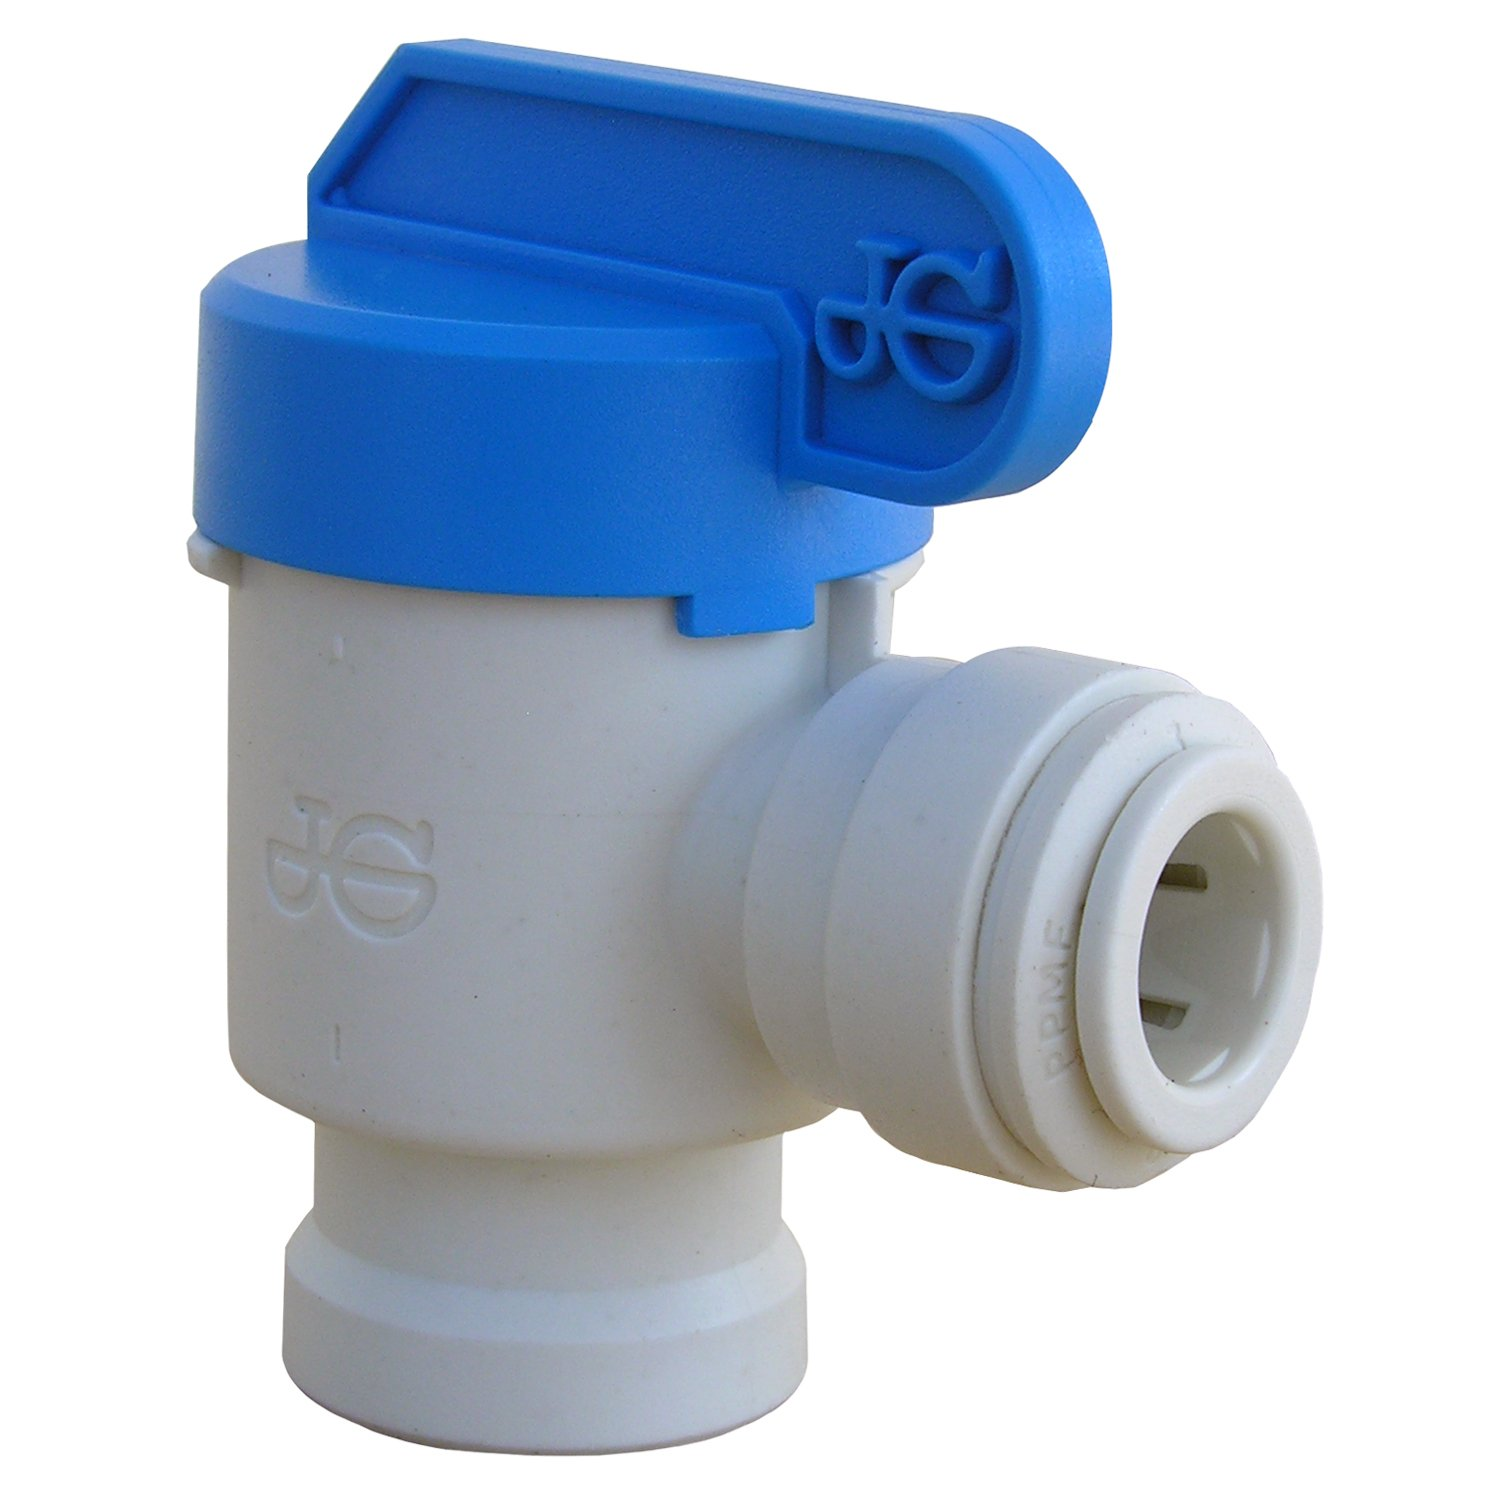 LASCO 19-6523 Angle Shut Off Valve Push-in Fitting with 3//8-Inch OD Tubing and 3//8-Inch Female Pipe Thread Plastic